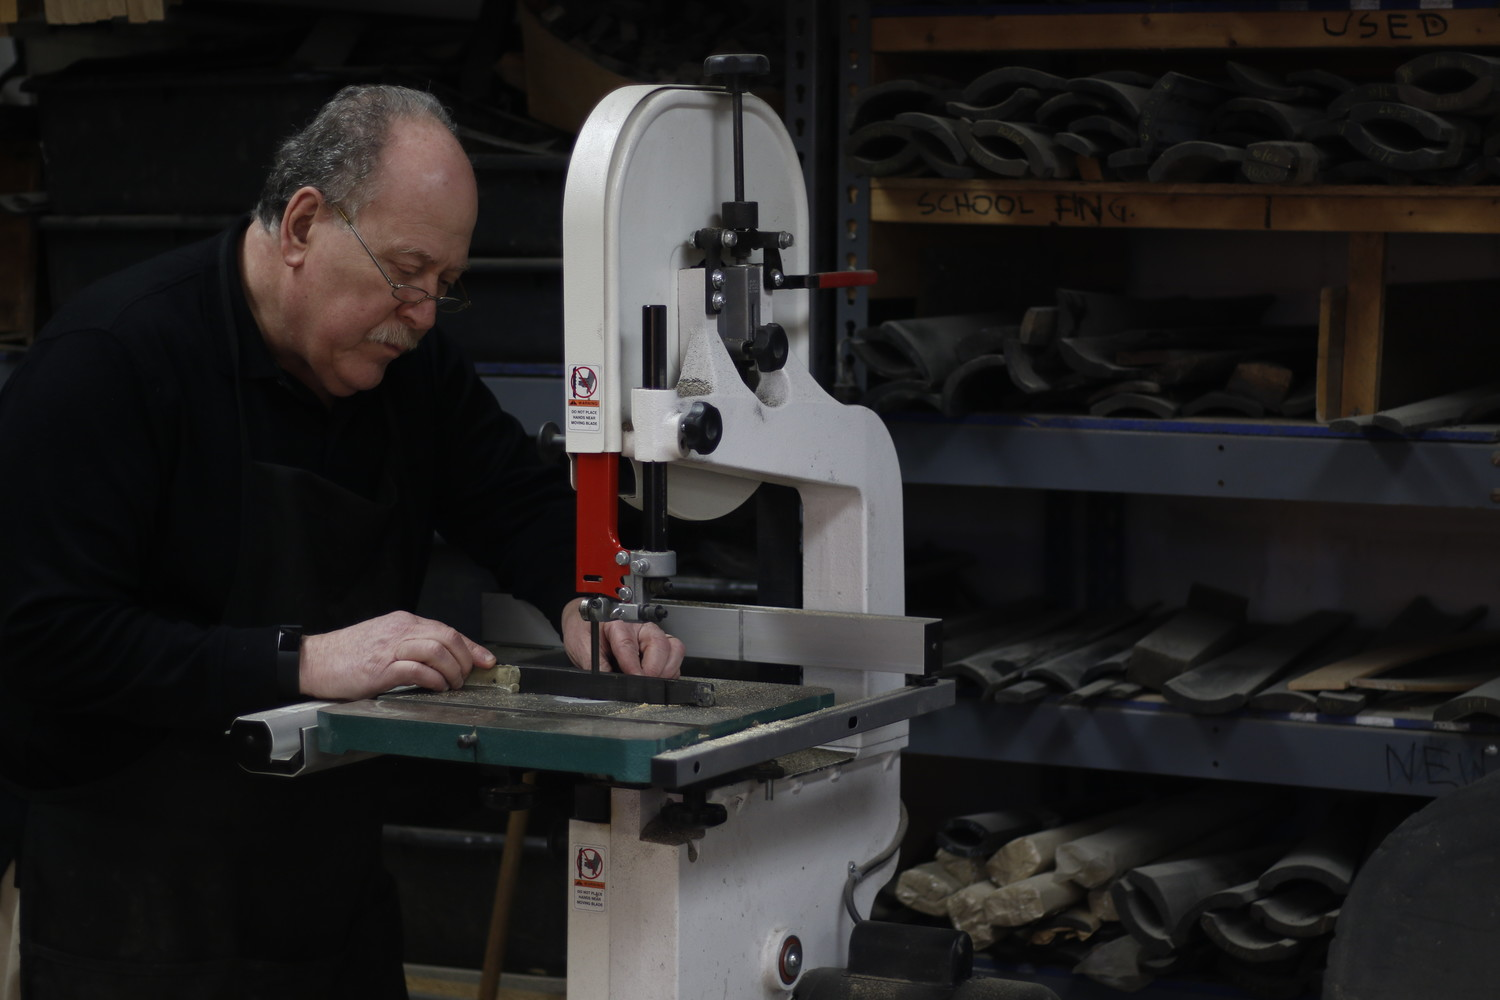 Handcrafting instruments has been a family tradition for 75 years at Kostein & Son in Baldwin. Barrie Kolstein takes pride in each instrument he creates or repairs.